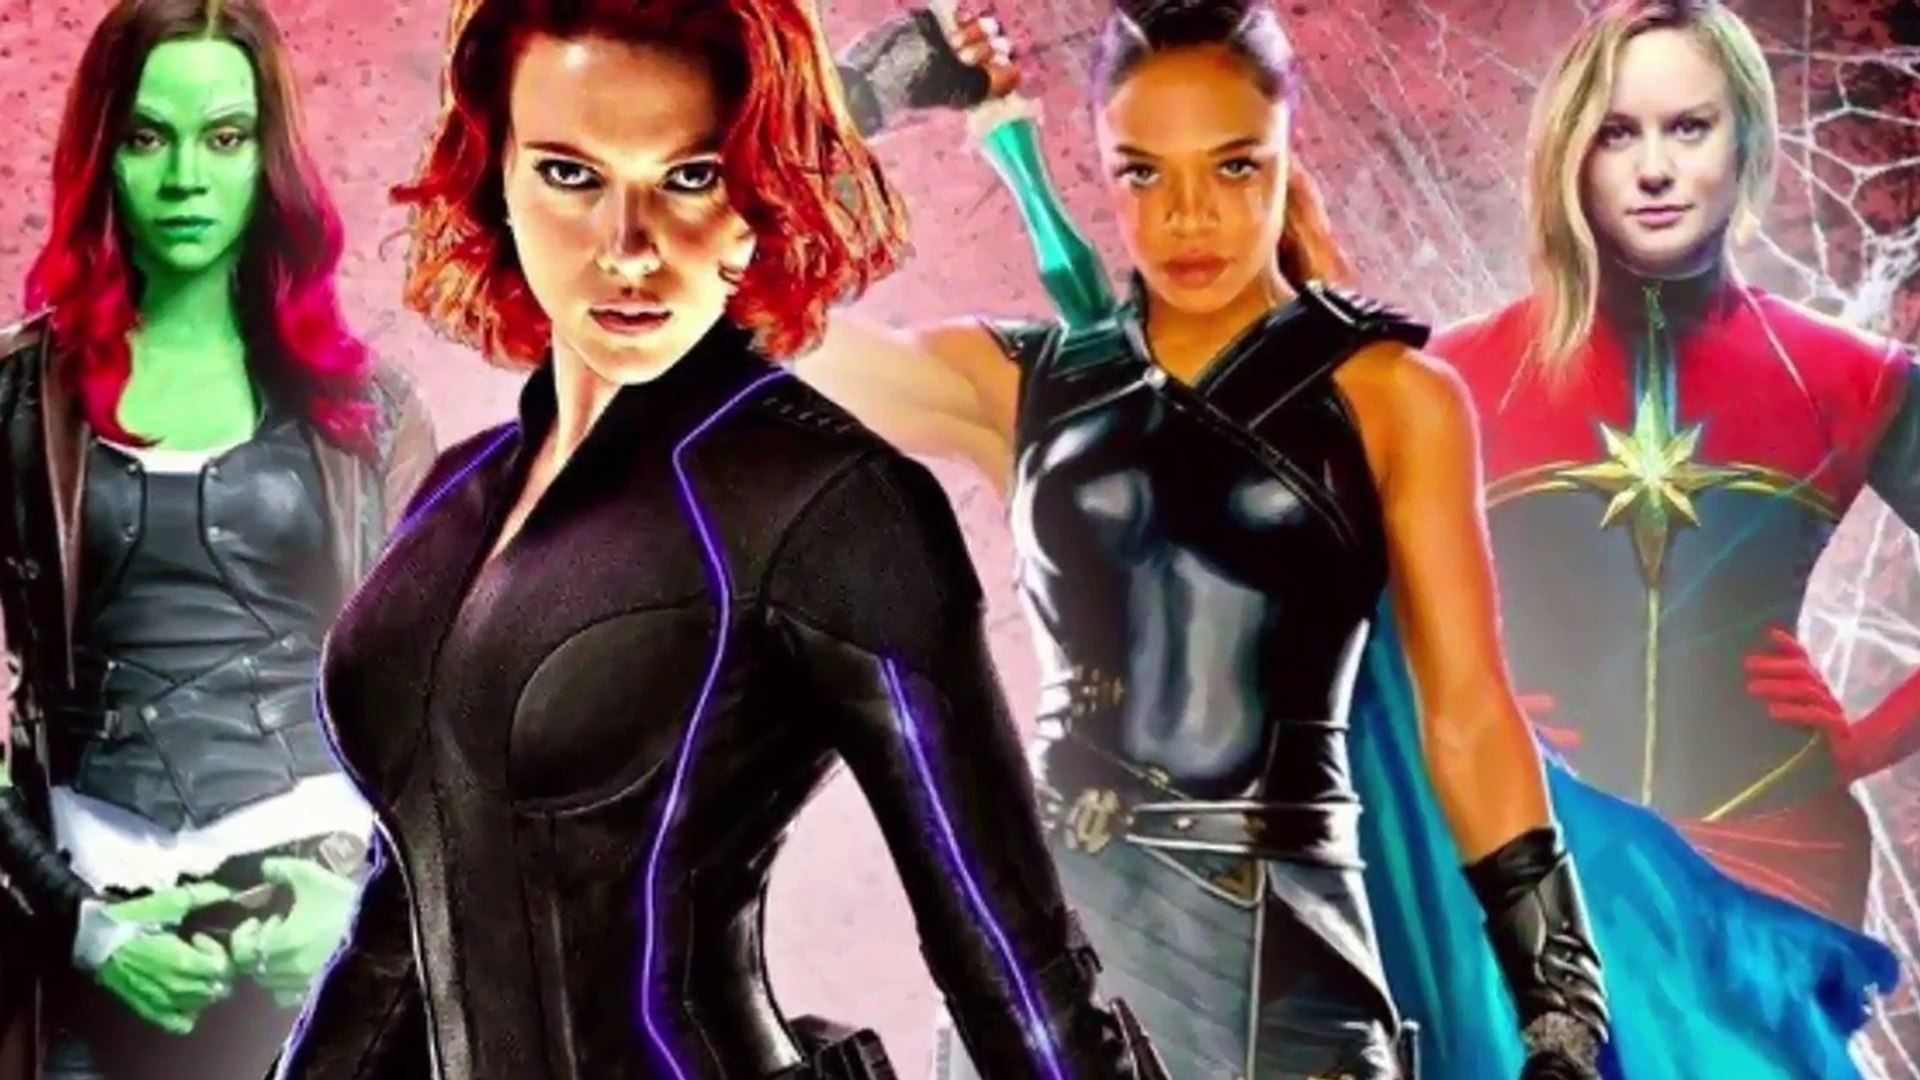 Marvel Phase 4 Movie News!!! Marvel Phase 4 Will Have More Female Driven Stories and Characters